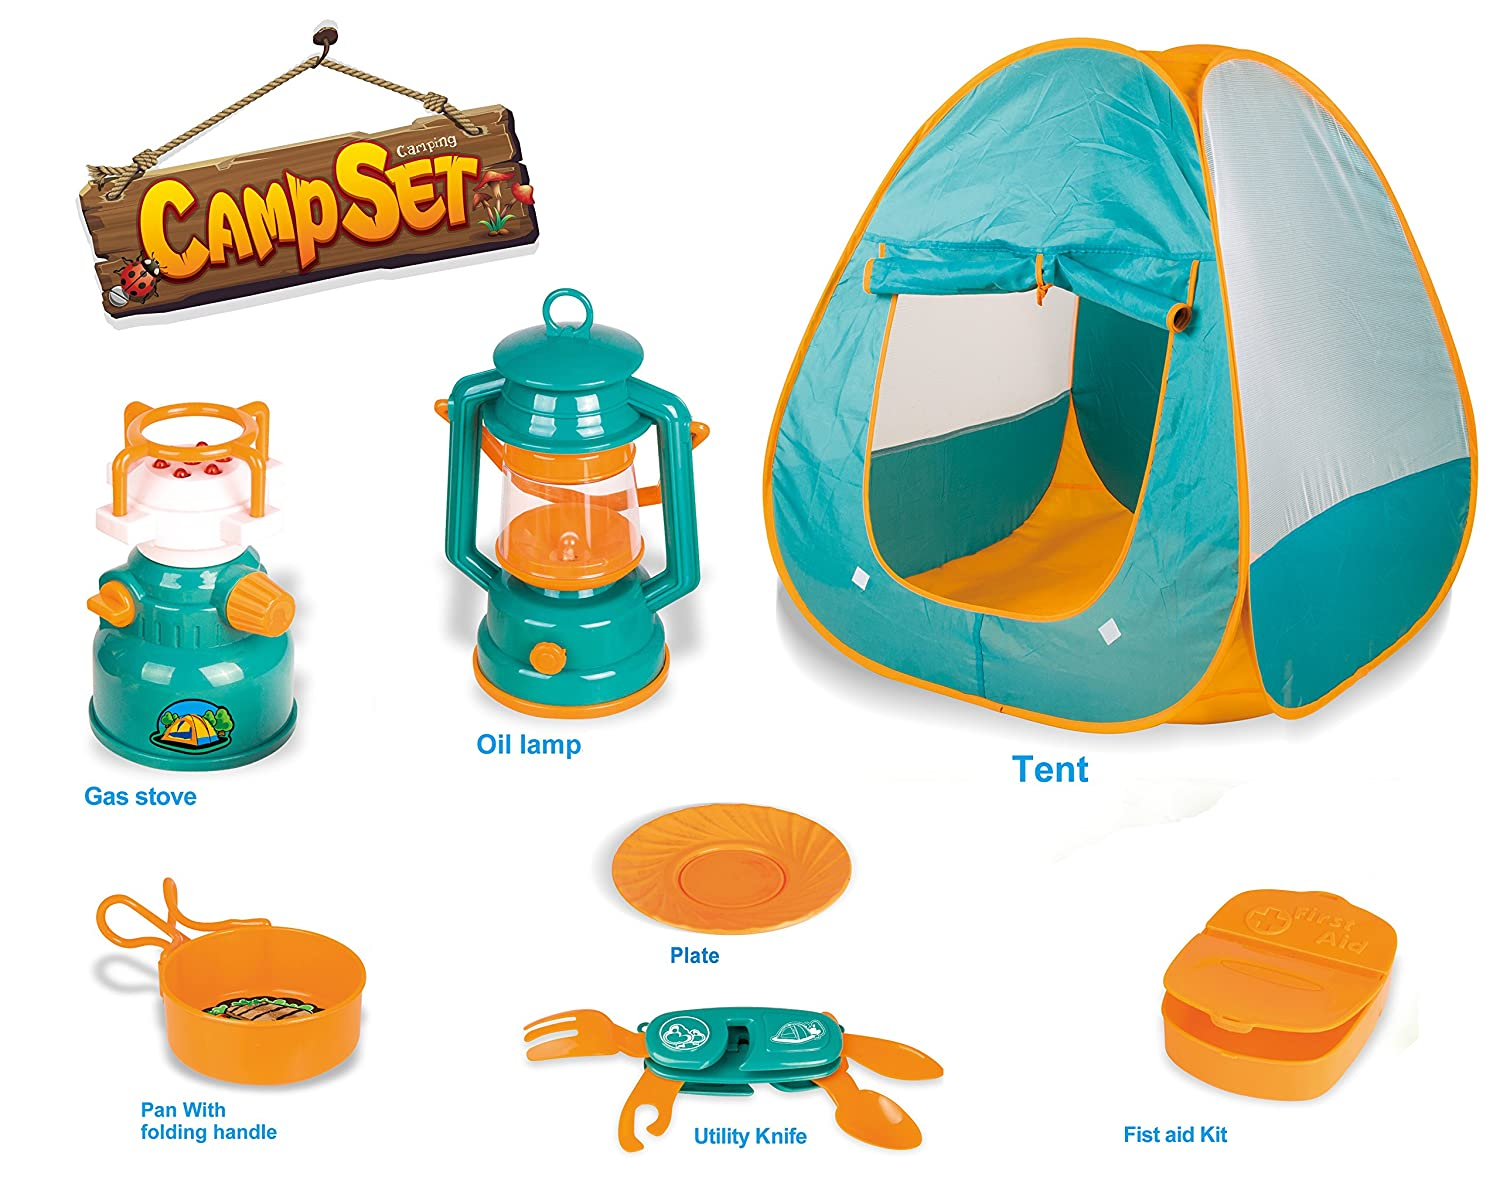 Little Explorers Pop Up Play Tent with Camping Gear Toy Tools Set for Kids (7 Pieces) Liberty Imports